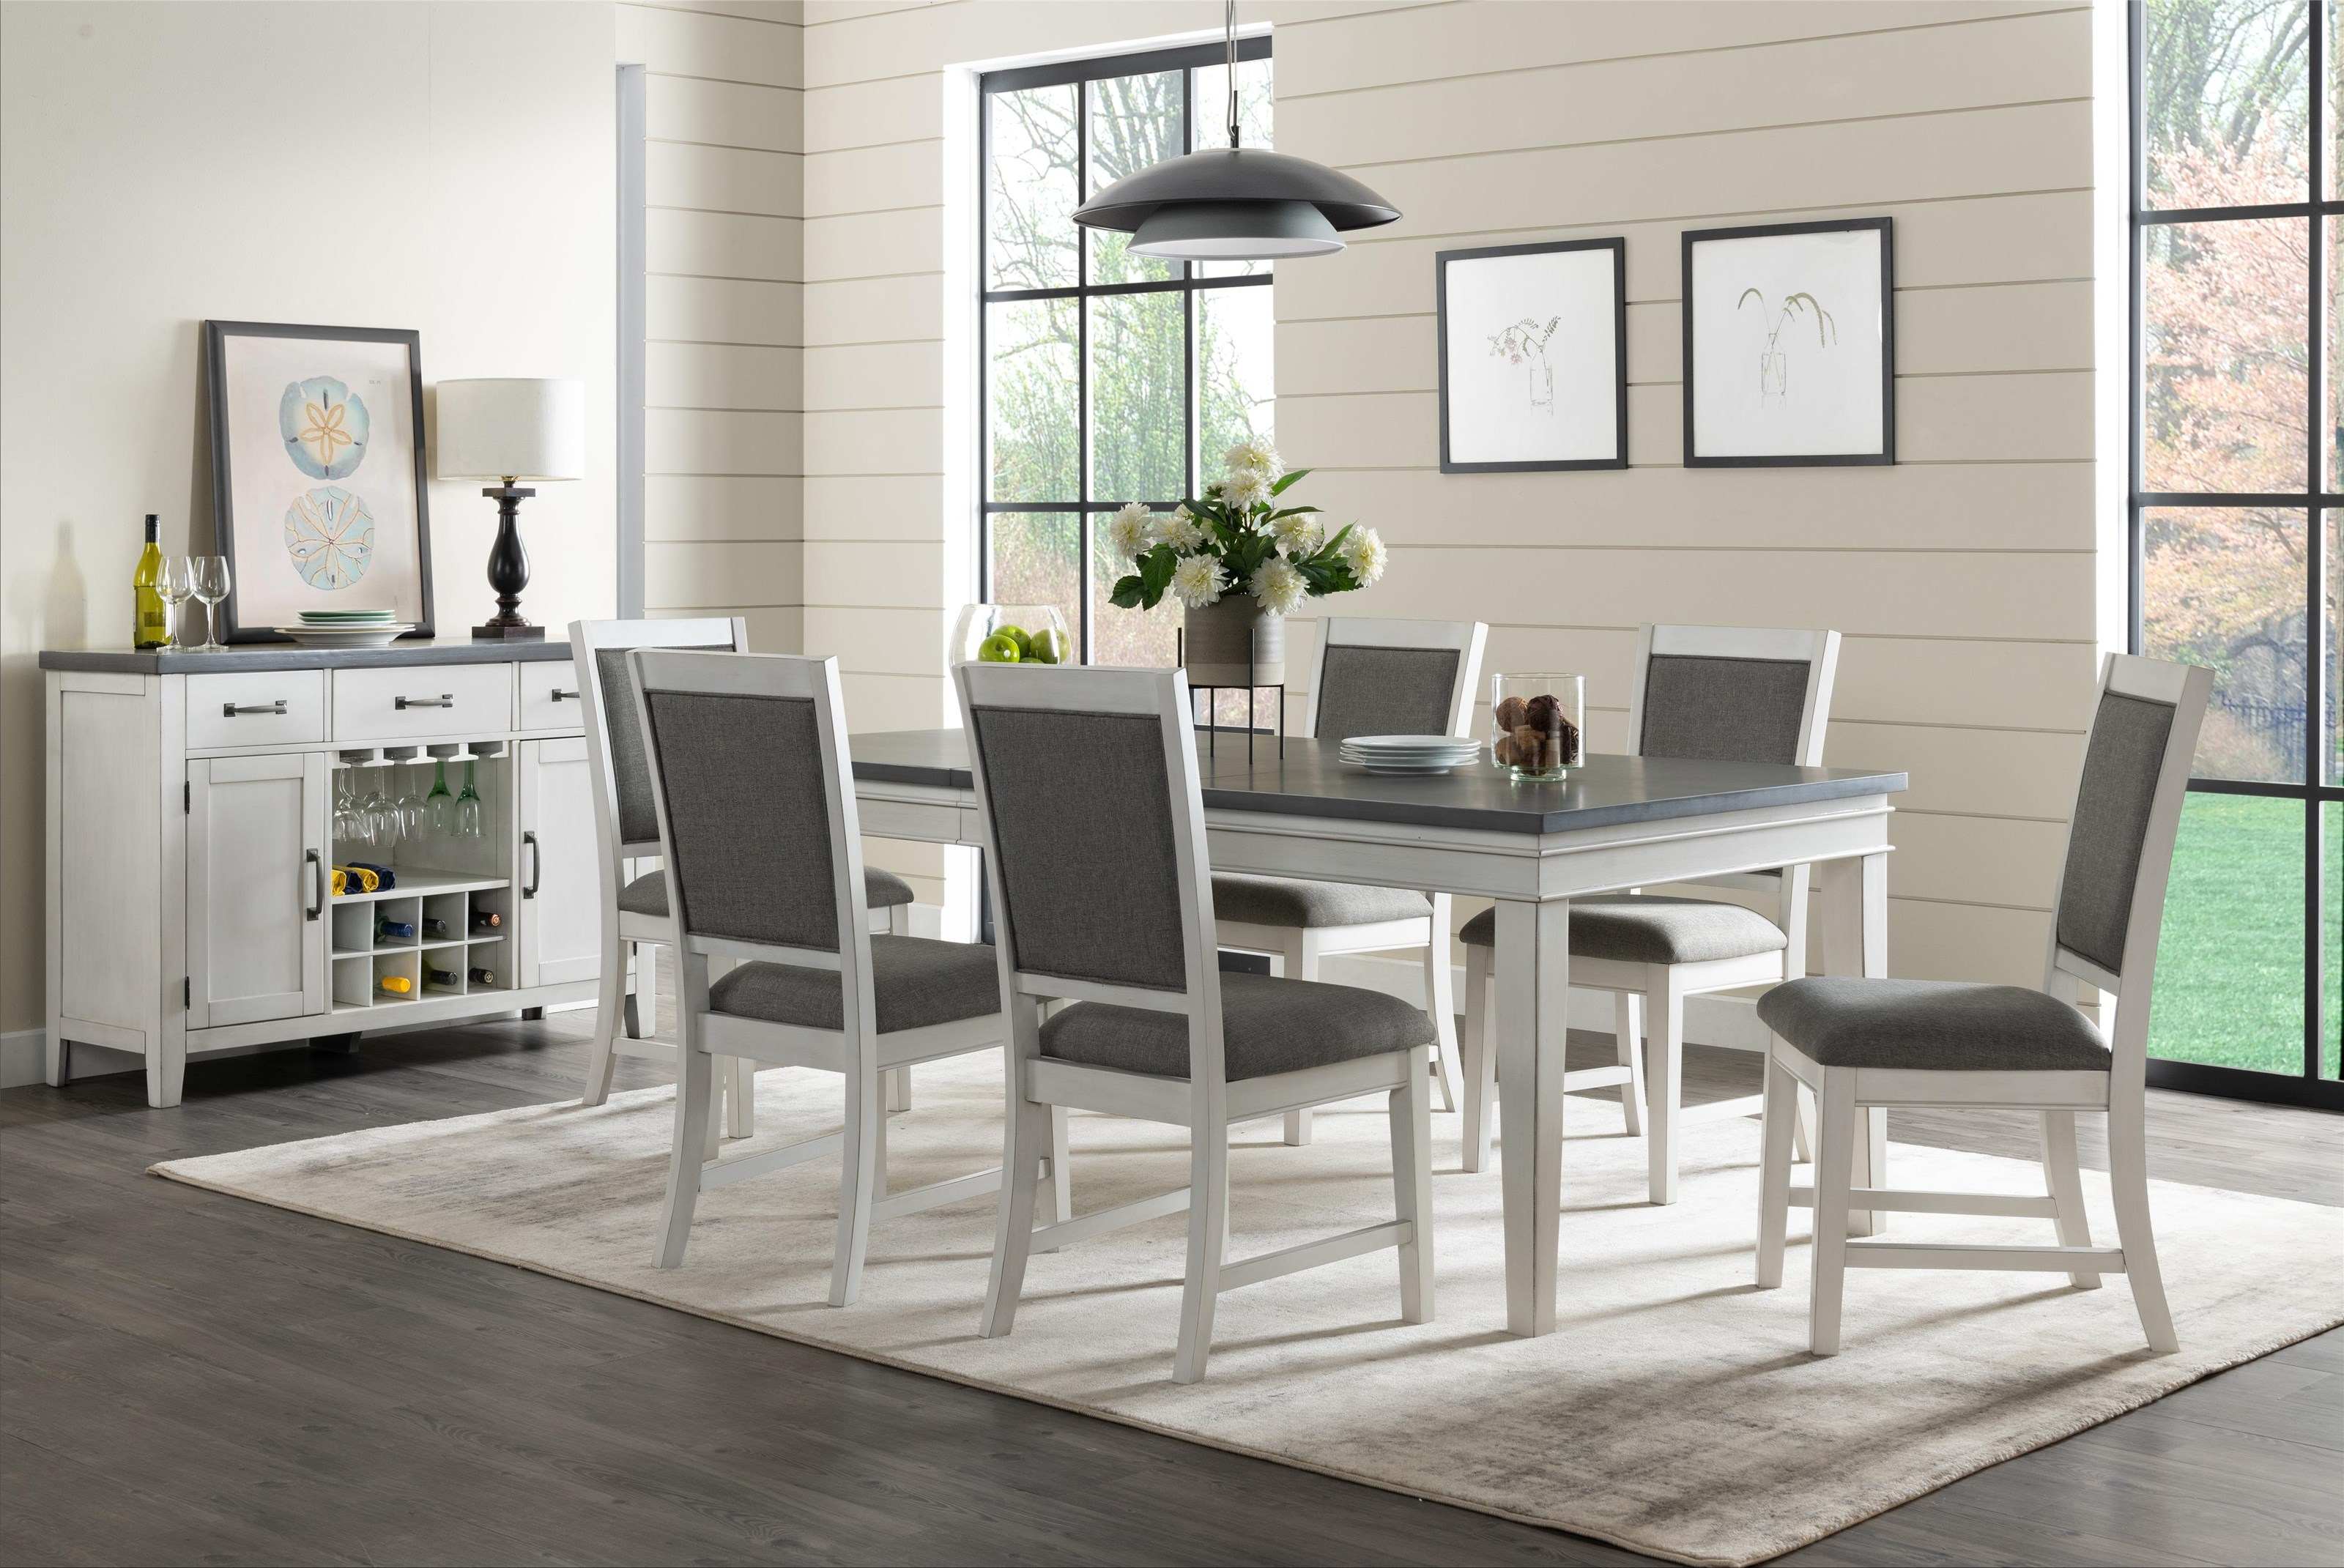 8 Piece Two-Tone Dining Set with Server